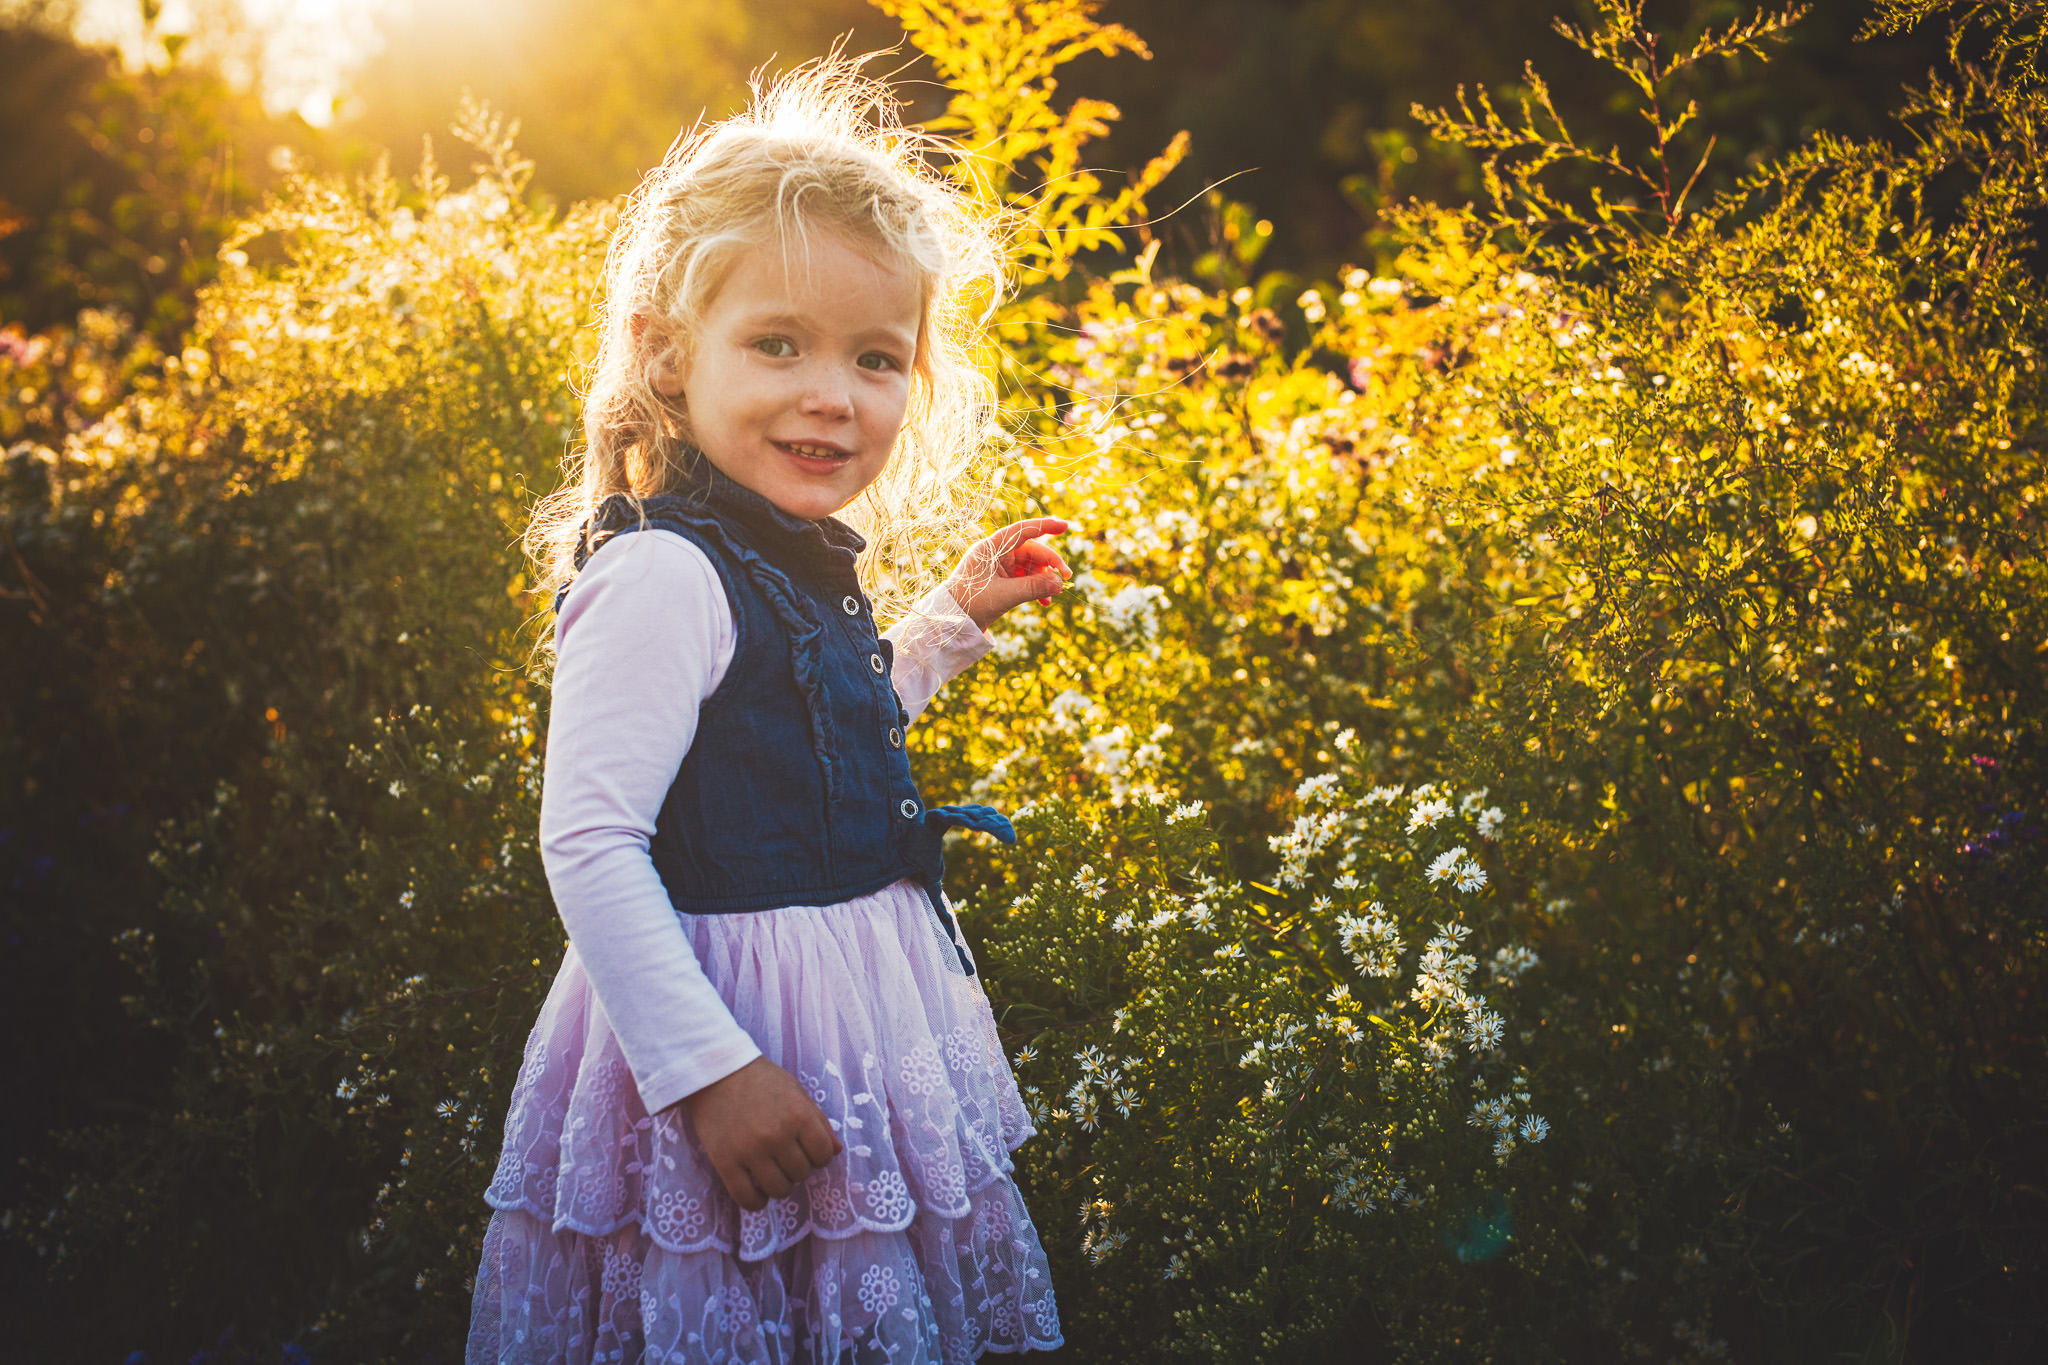 Family photography young girl picks flowers